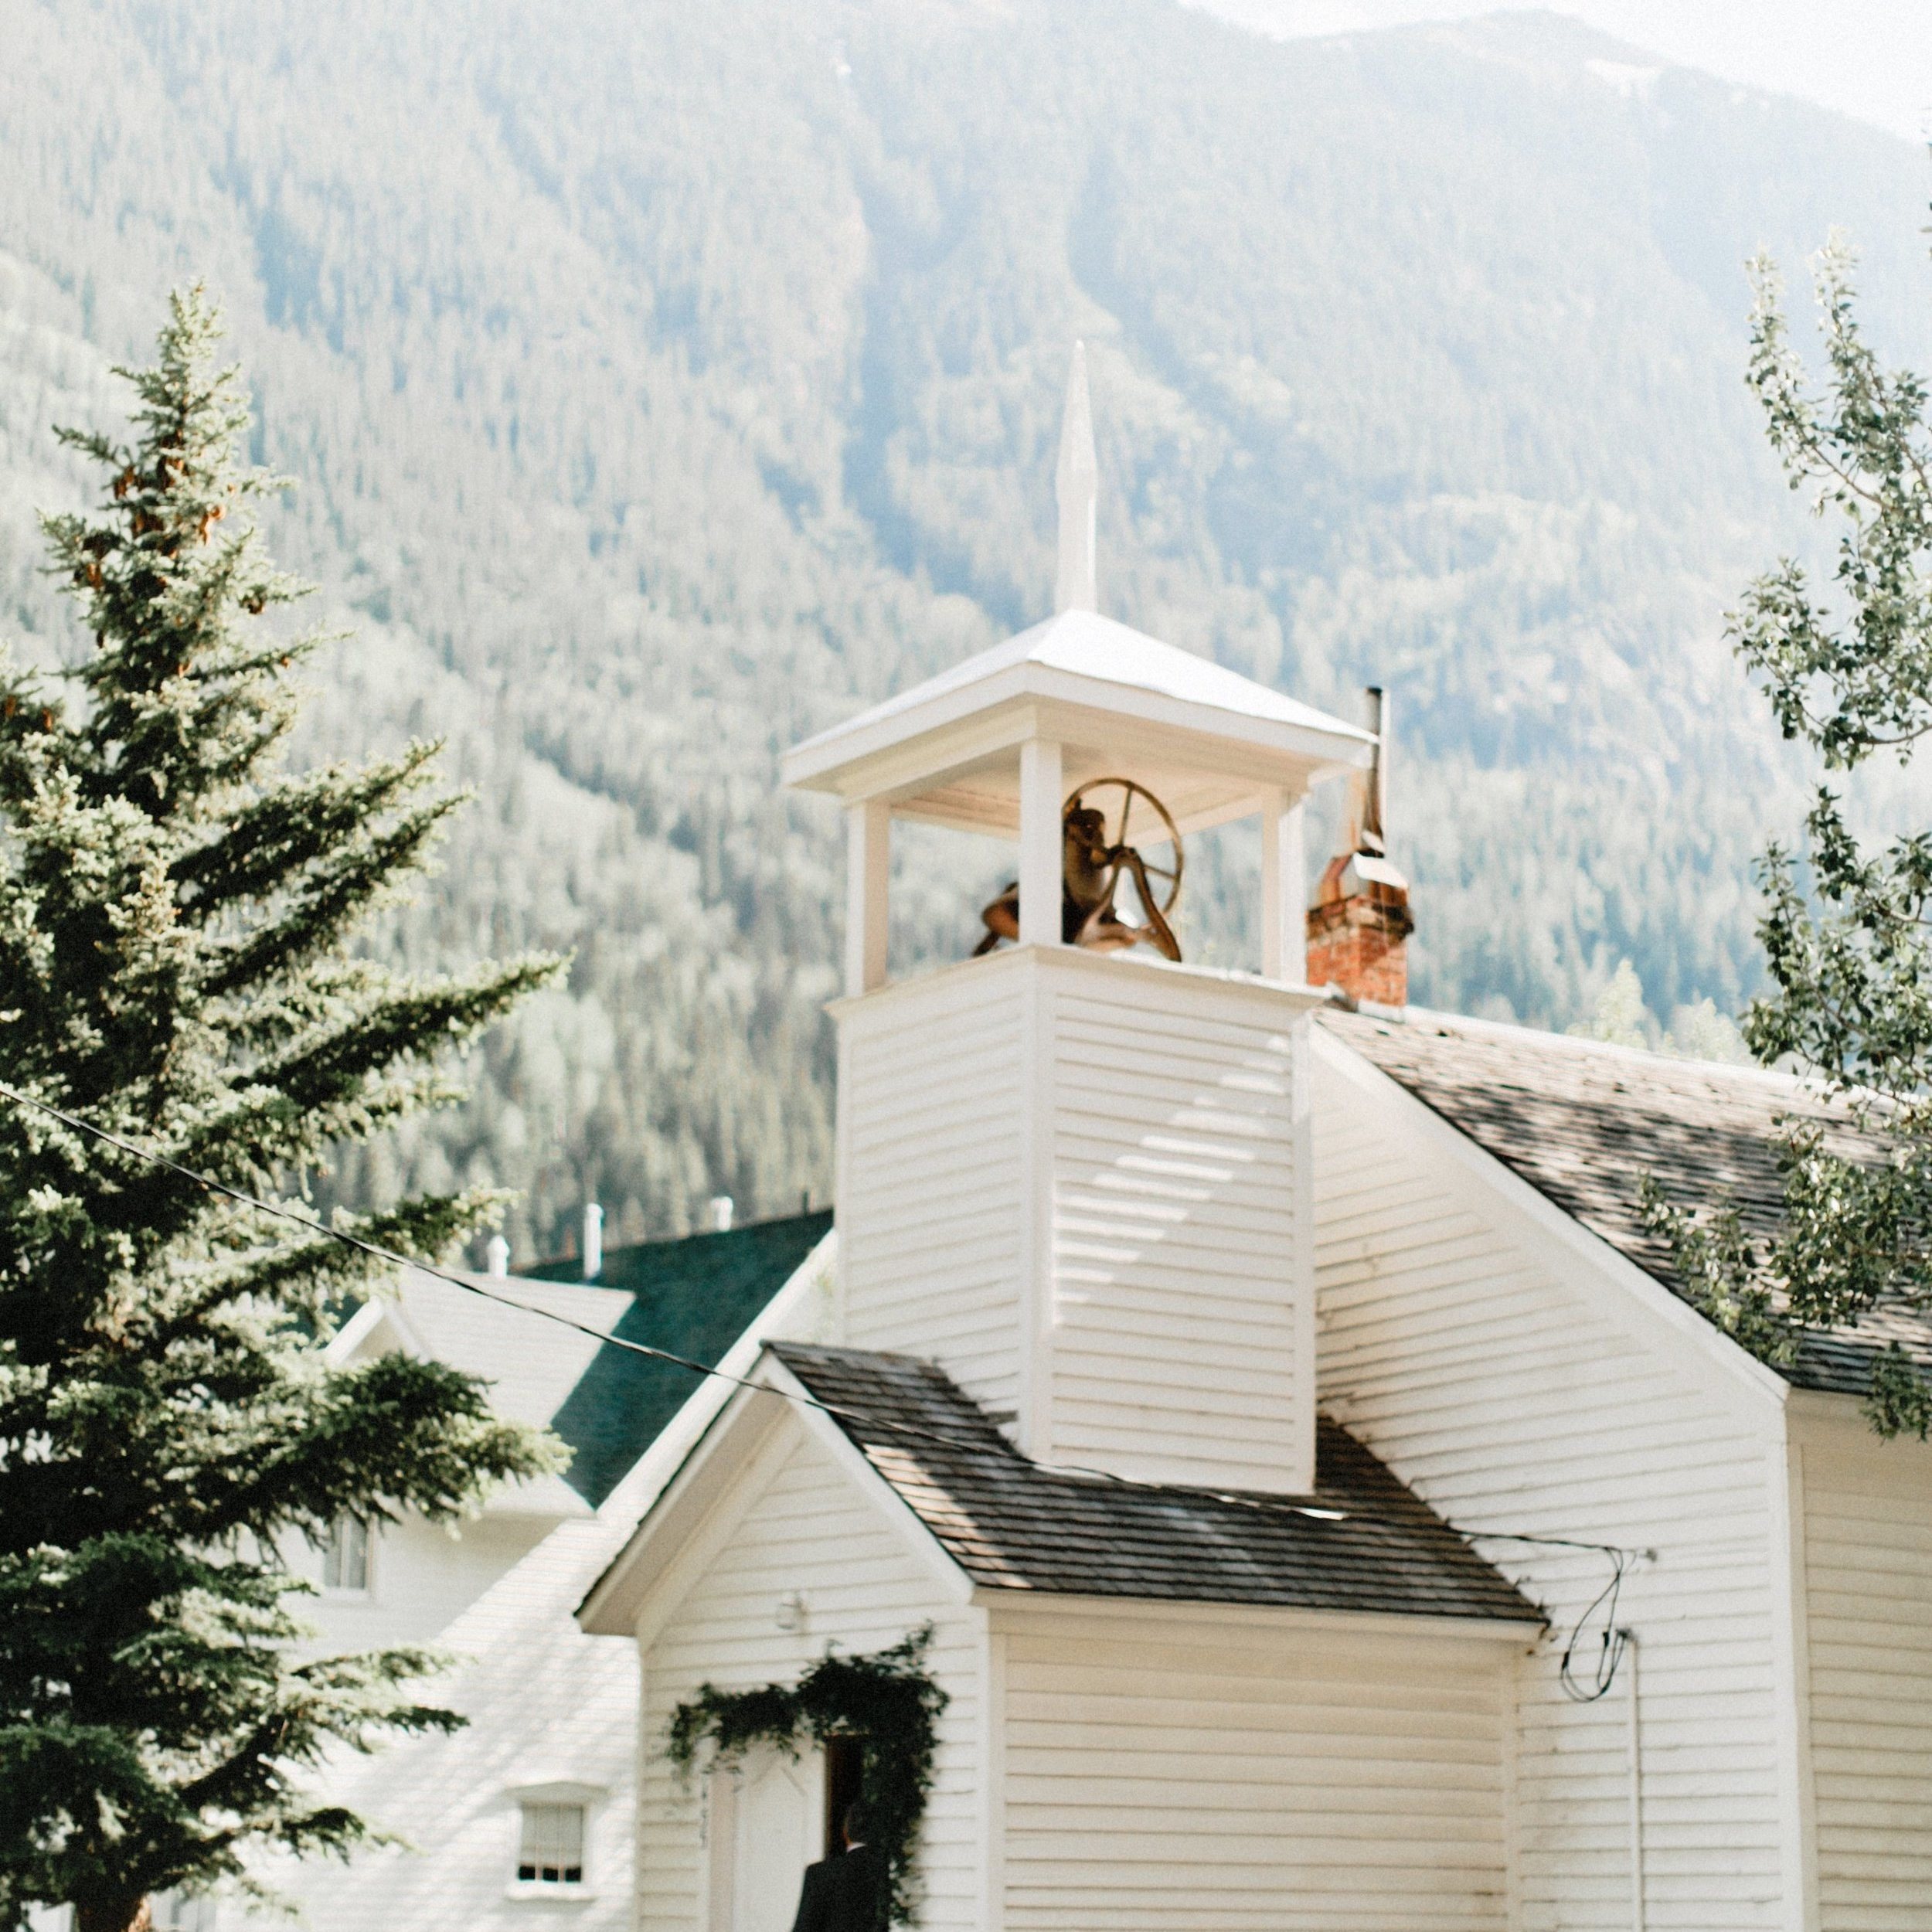 Private-Residence-Mountain-Wedding-Unique-Party-Ideas45.jpg